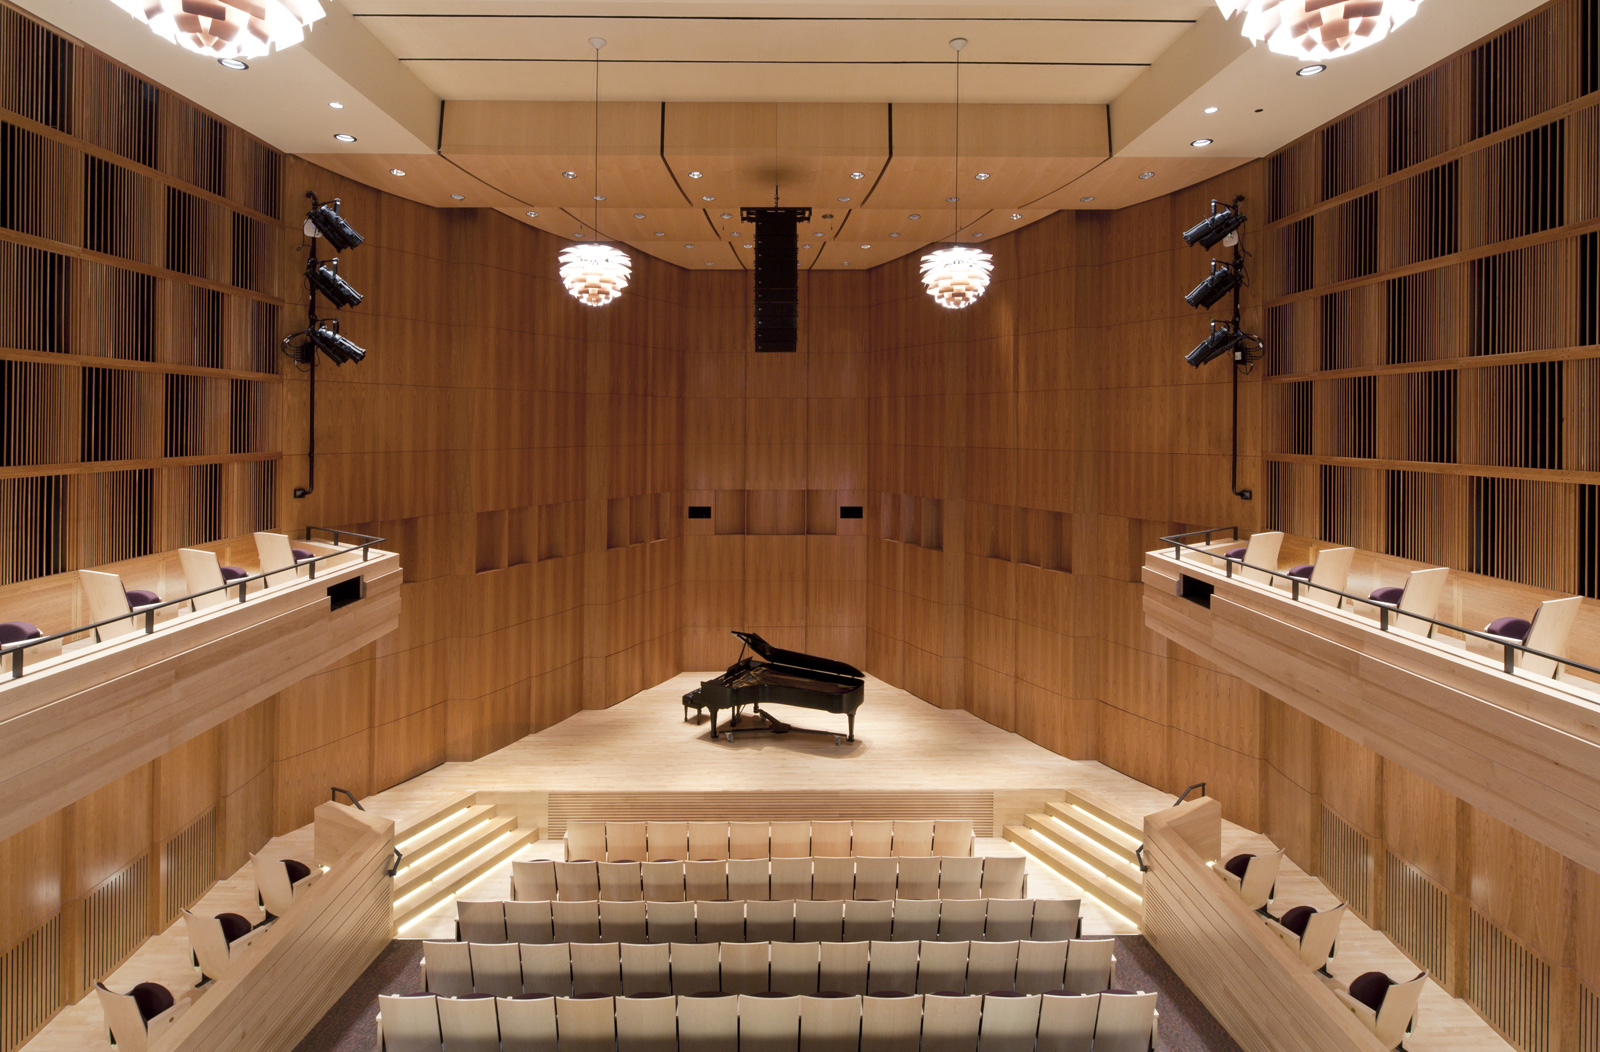 Eastman School of Music: Hatch Recital Hall